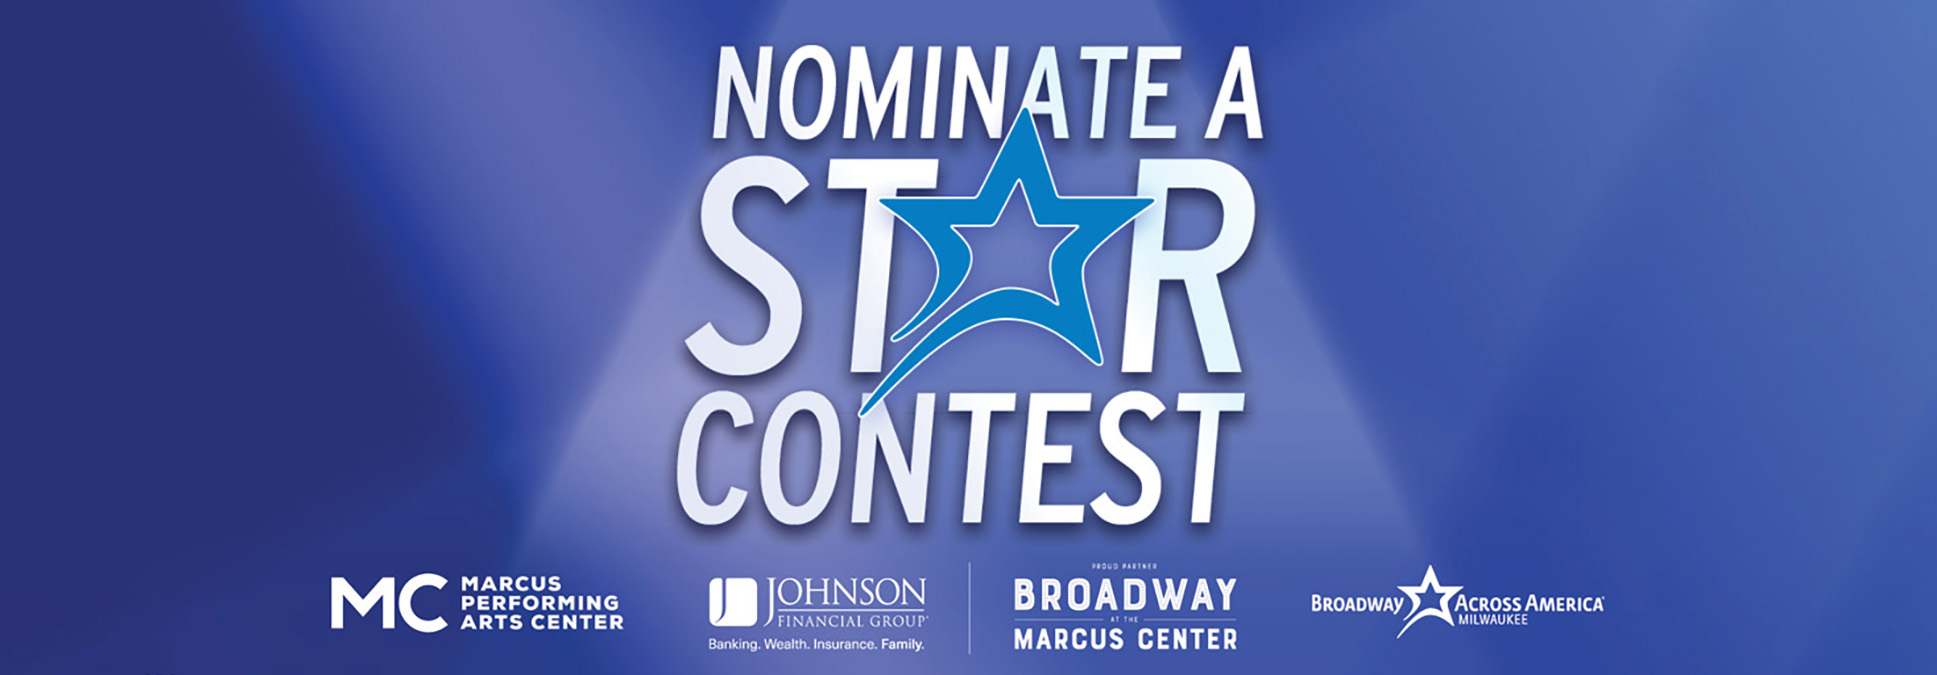 Nominate a Star at the Marcus Center in Milwaukee